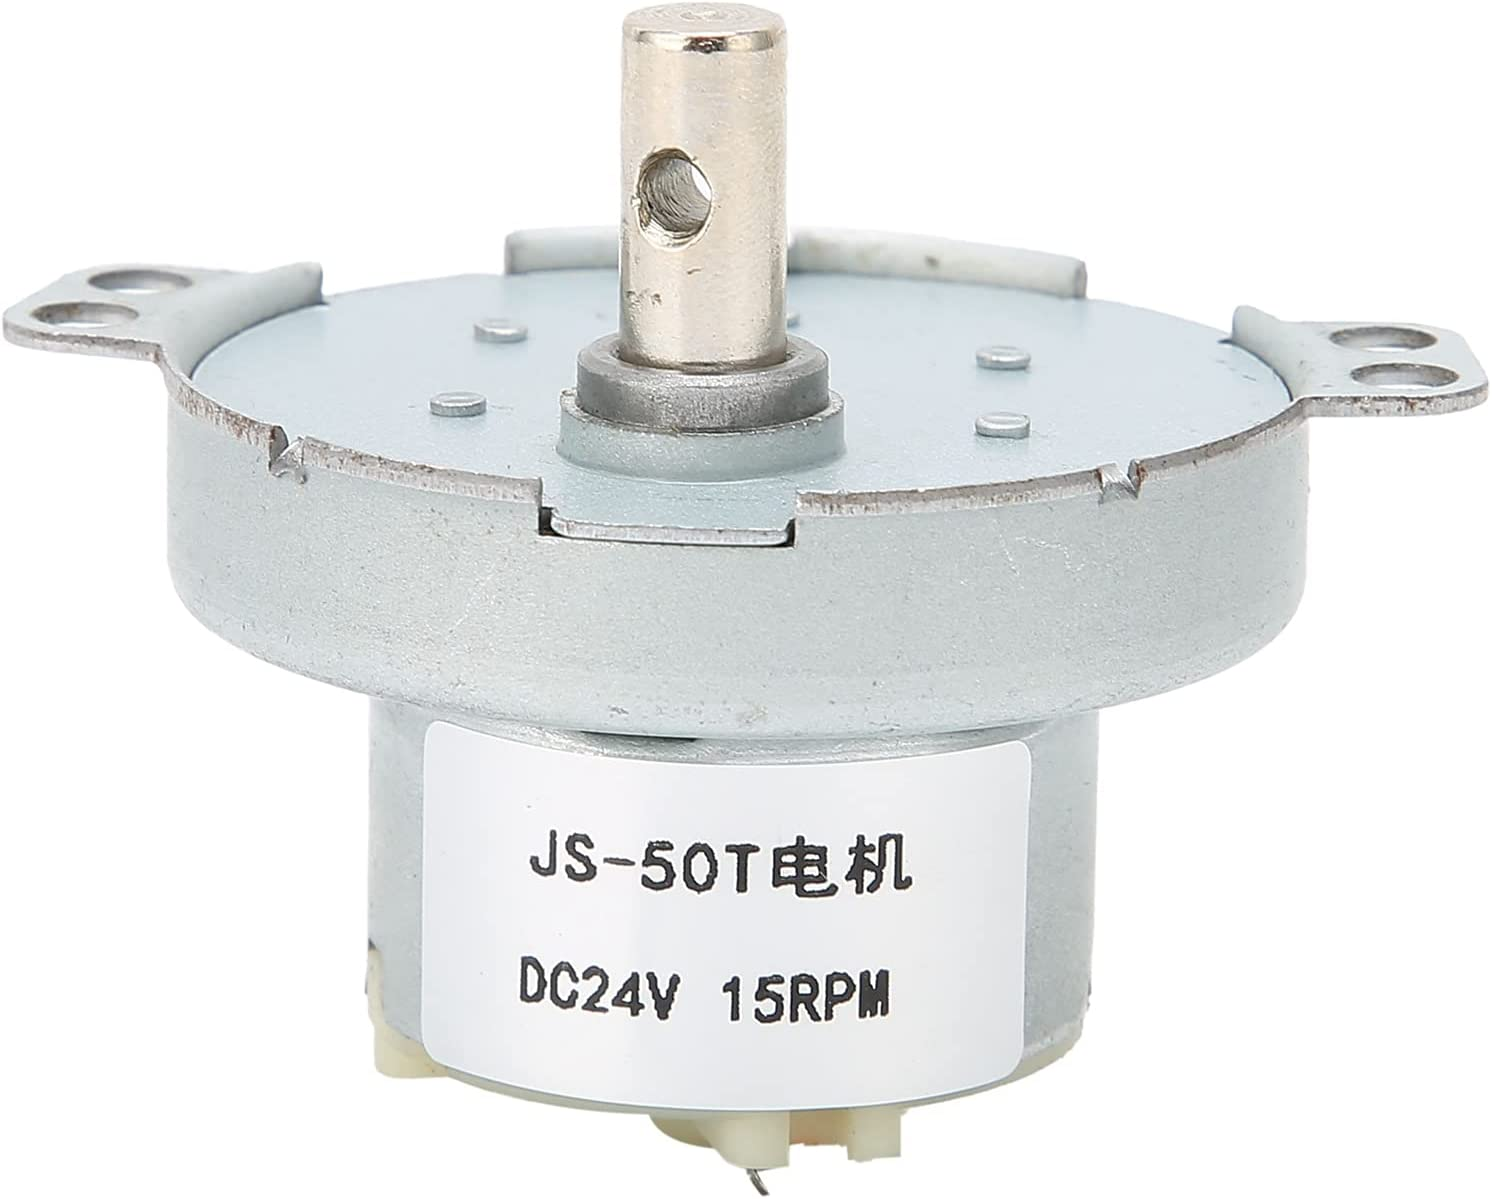 DC24V 15RPM Gear Motor High Turbin 67% OFF of fixed price Reduction Gifts Speed Torque